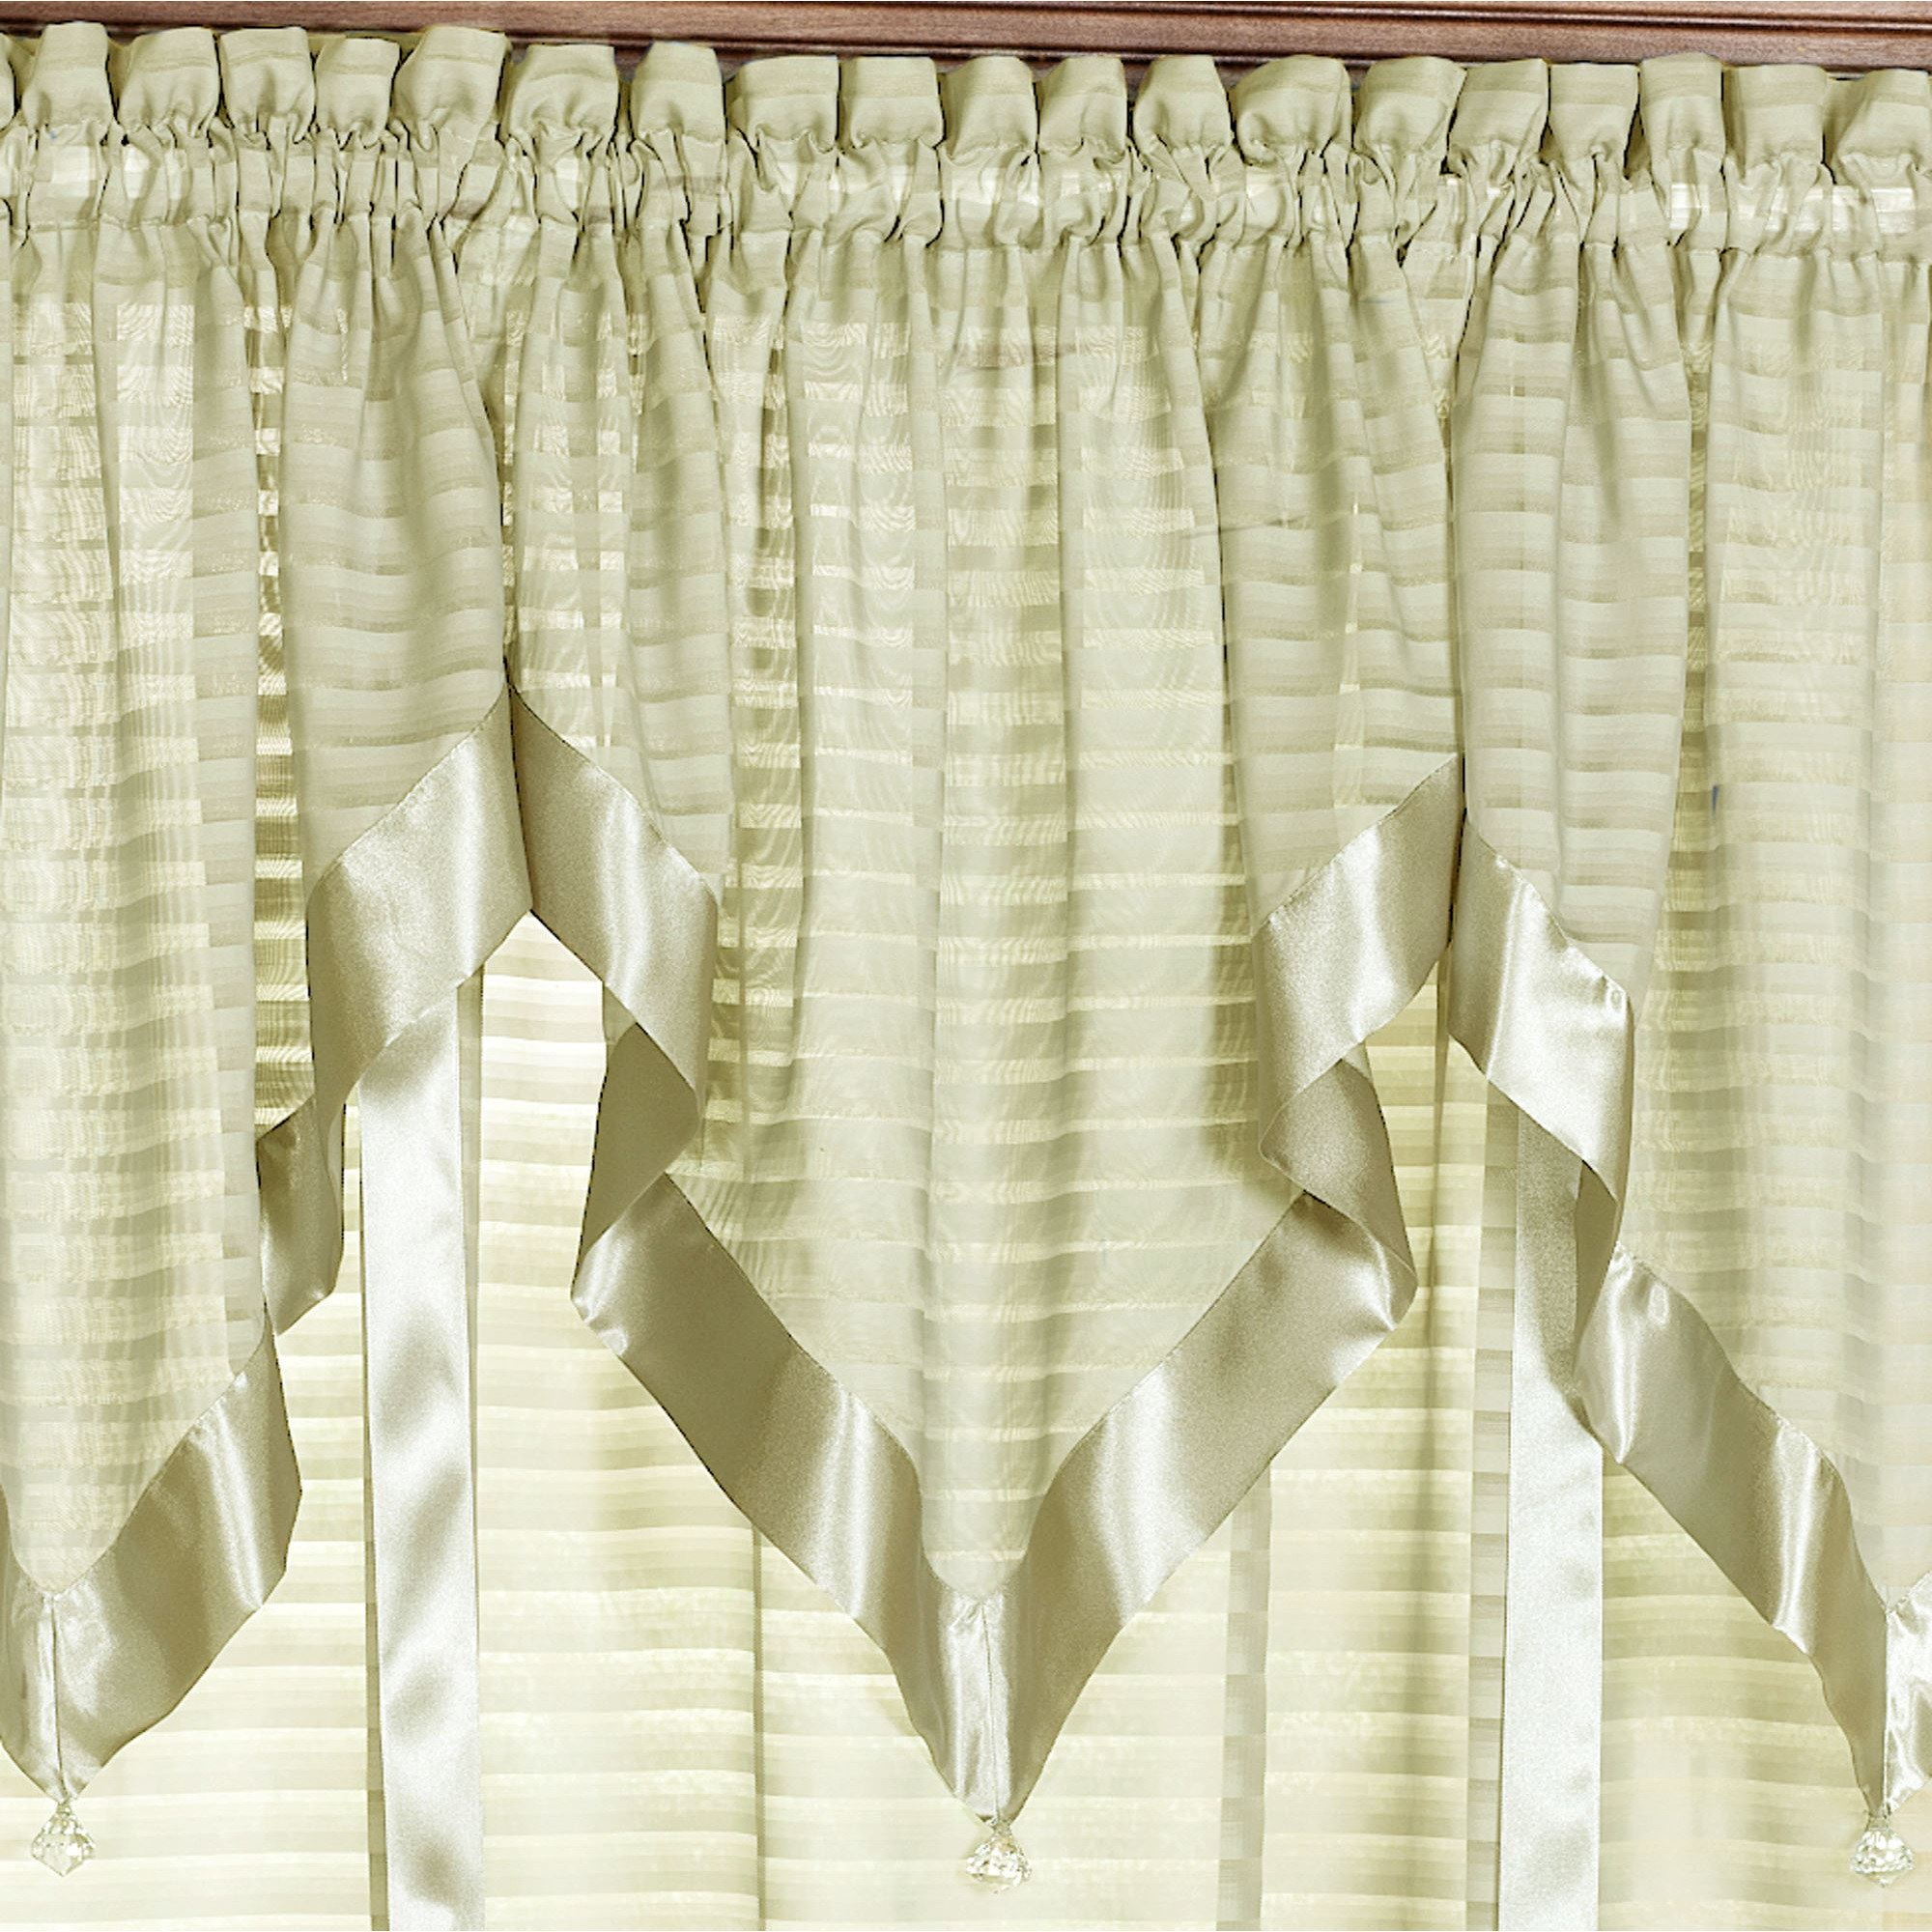 semi treatment curtain valance expand tailored p window click for panel hathaway valances windows sheer to